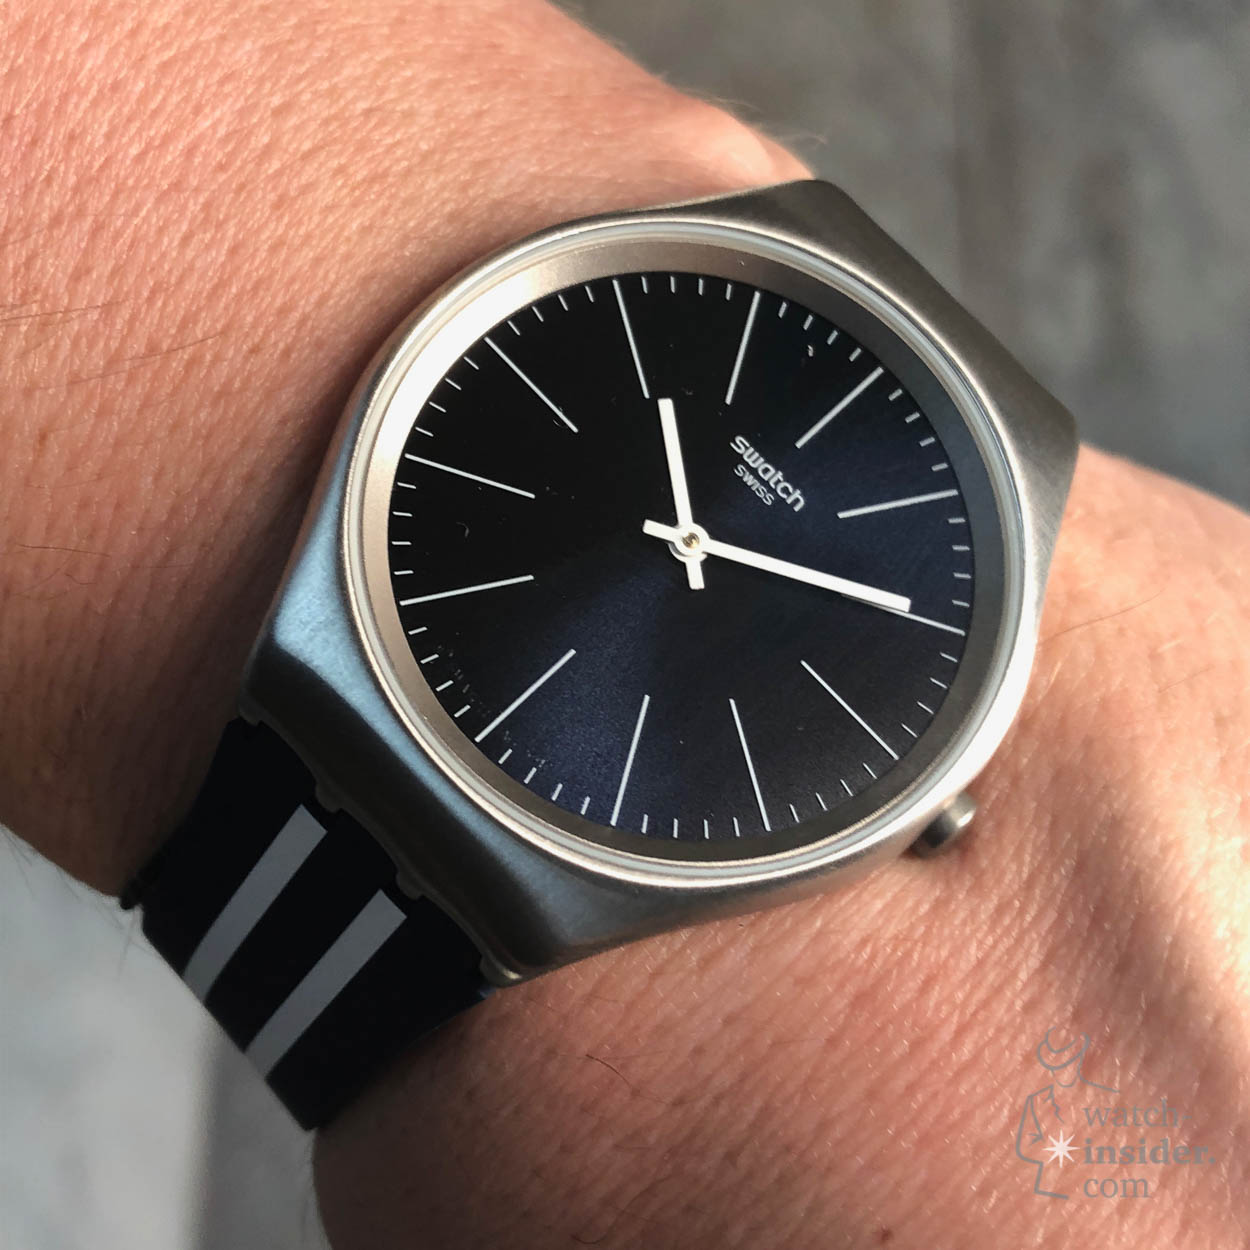 a47da6814973 ... a dark or light dial. Only the full metal Skin Irony watches have a  dial that matches the rest of the watch